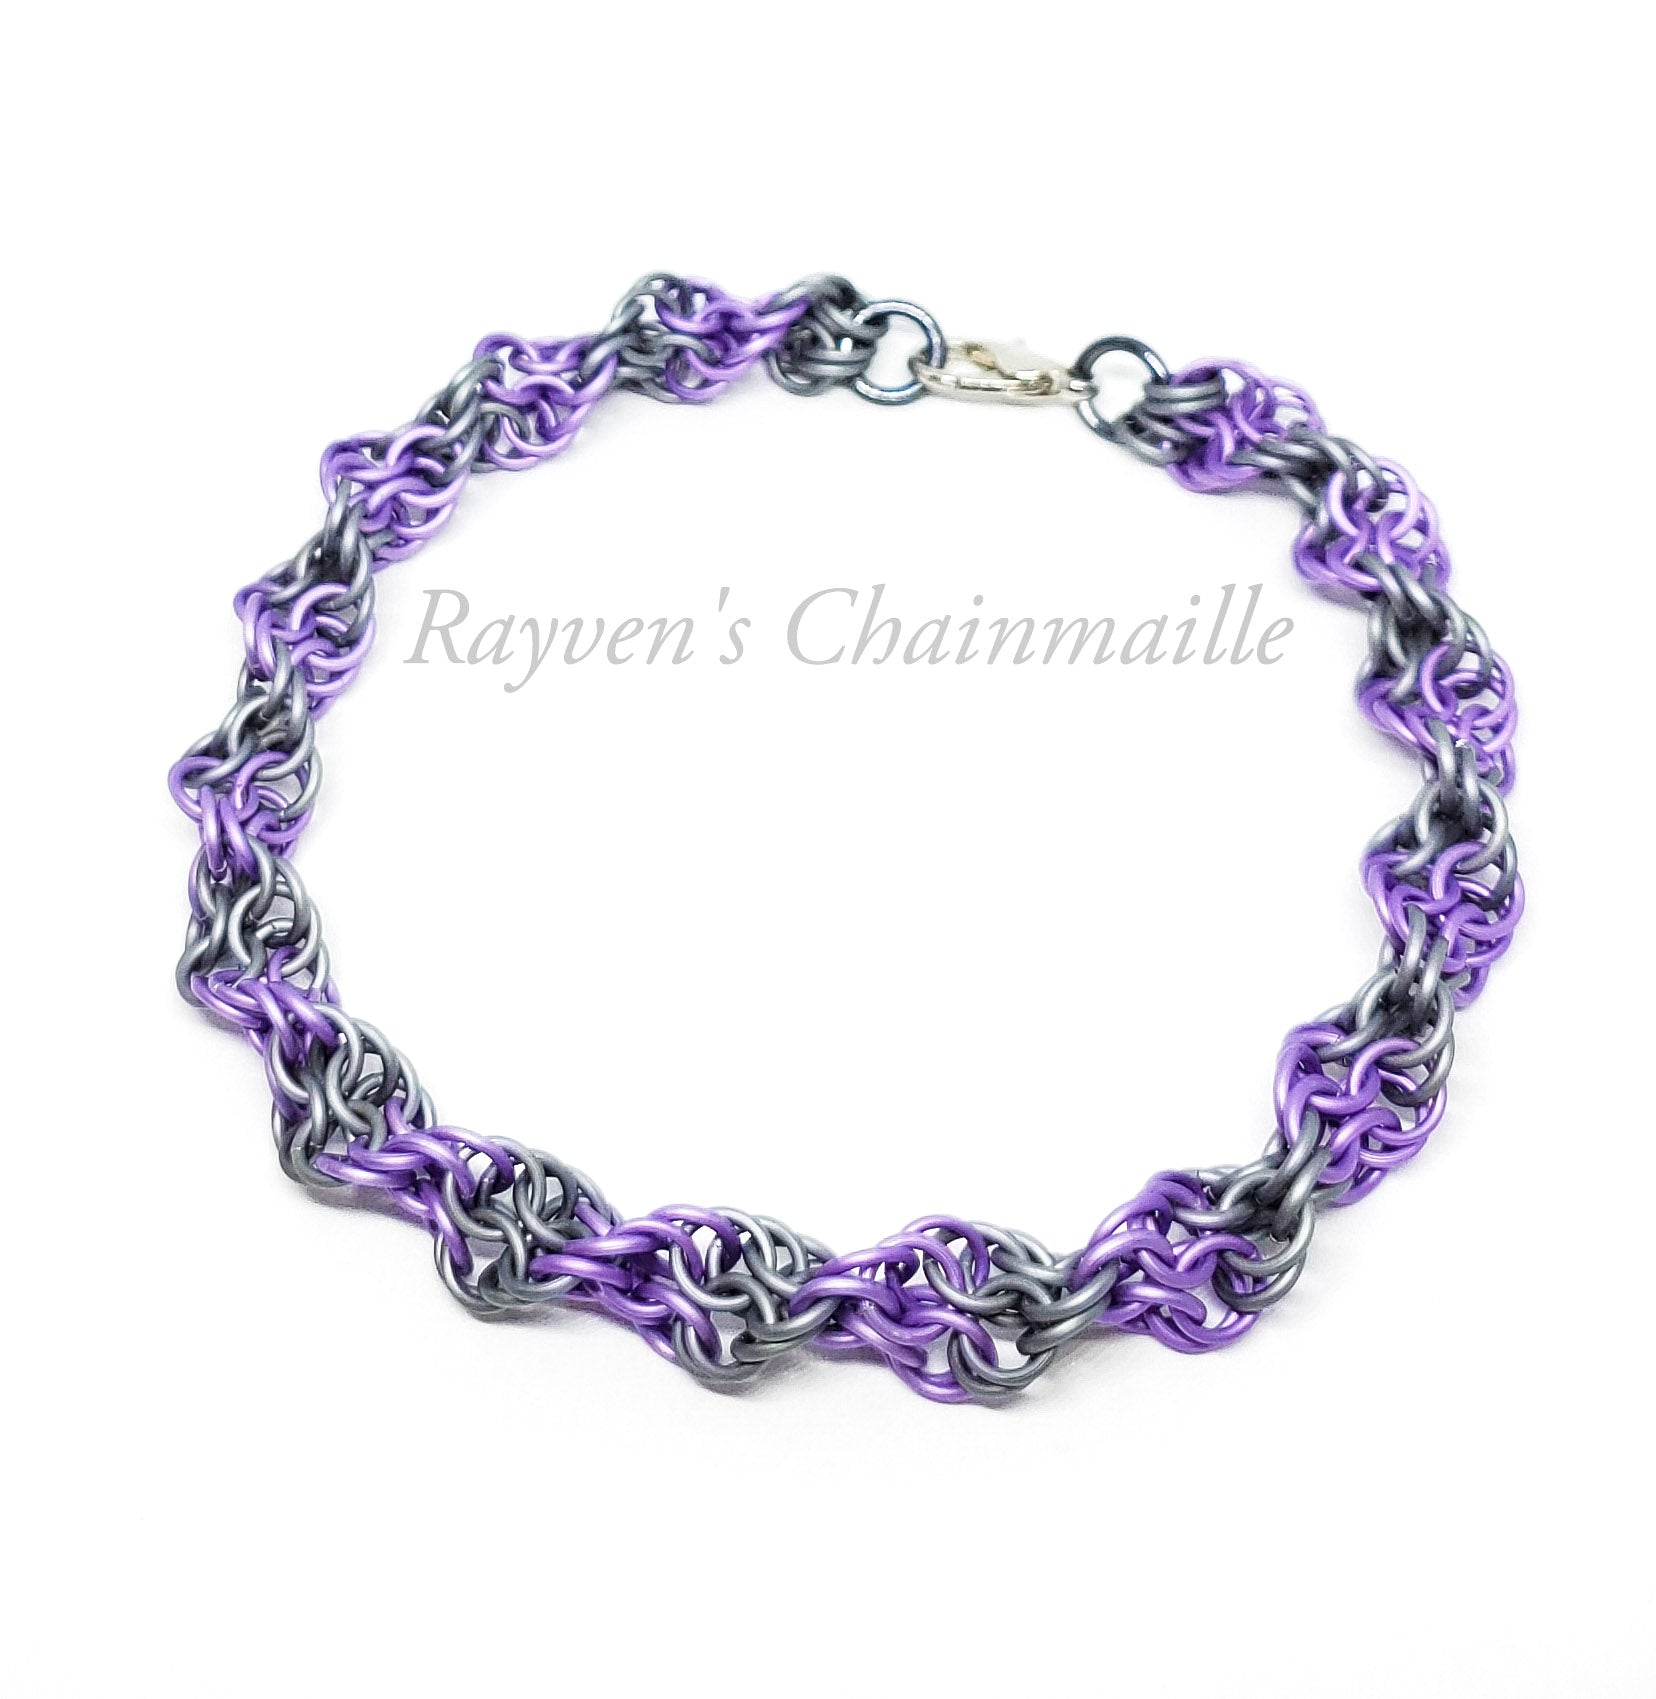 Rayven's Chainmaille| Matte Purple Double Helix DNA Chainmail Bracelet